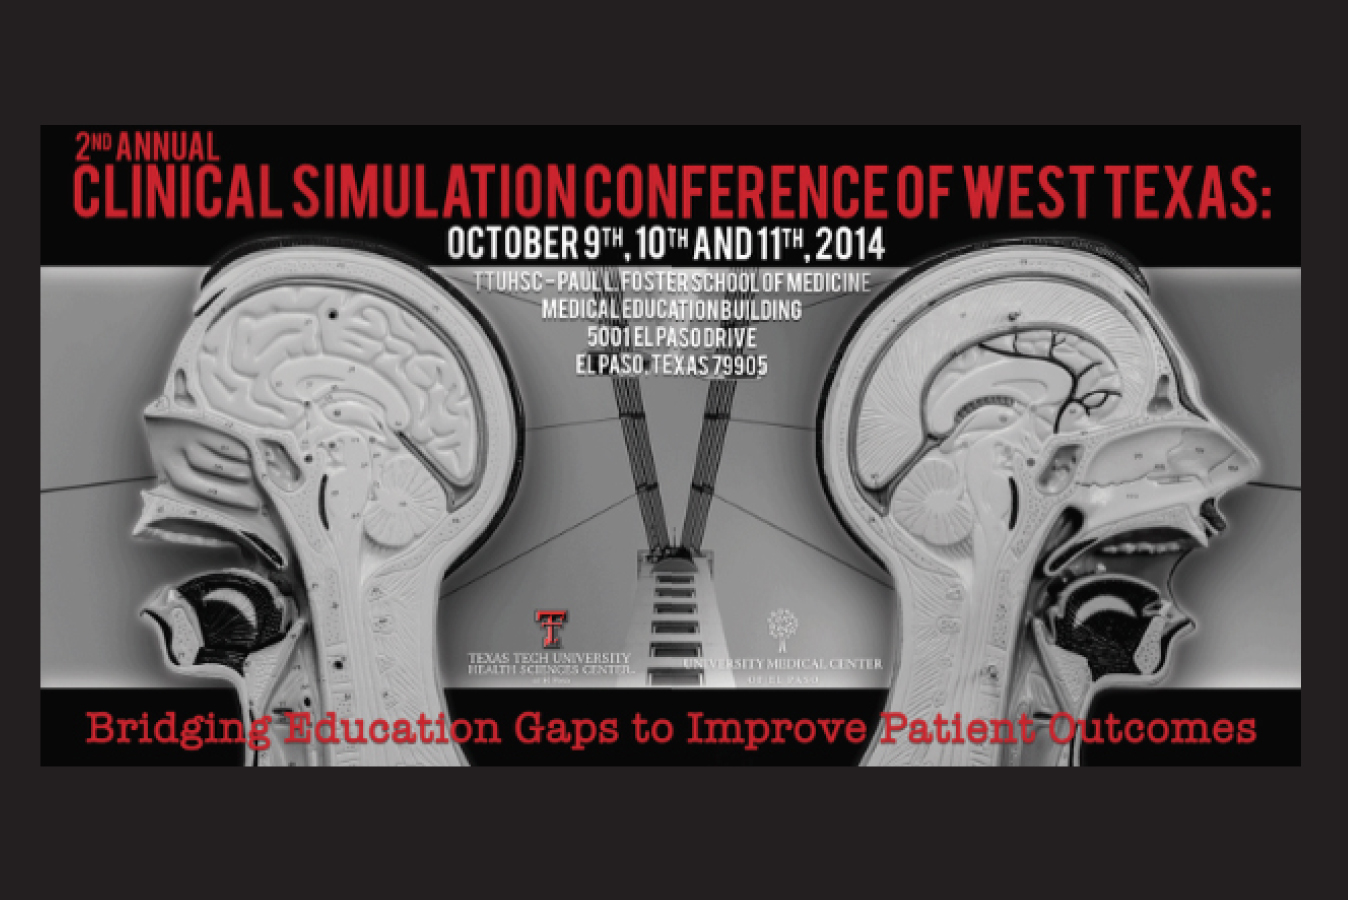 Second Annual Clinical Simulation Conference of West Texas